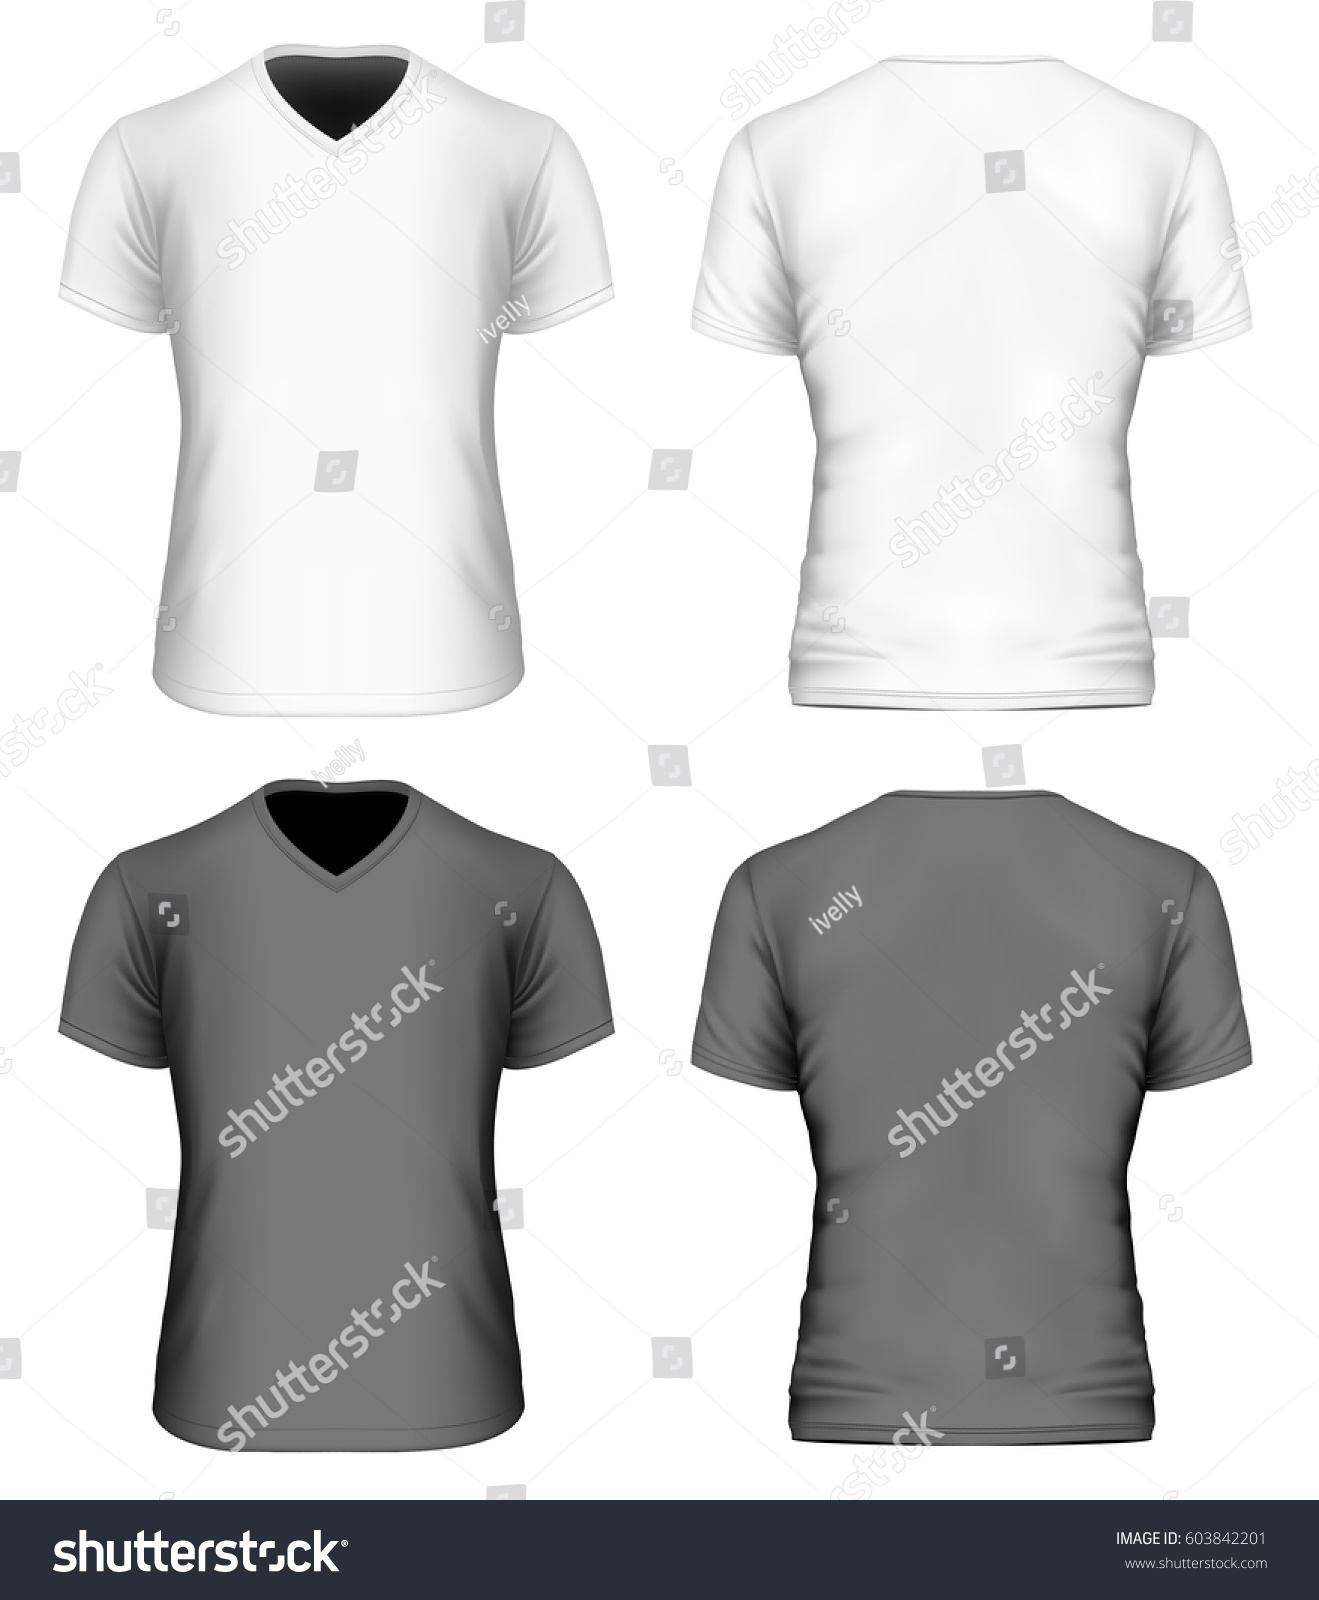 Black t shirt vector front and back - Men S V Neck Short Sleeve T Shirt Front And Back Views Of White